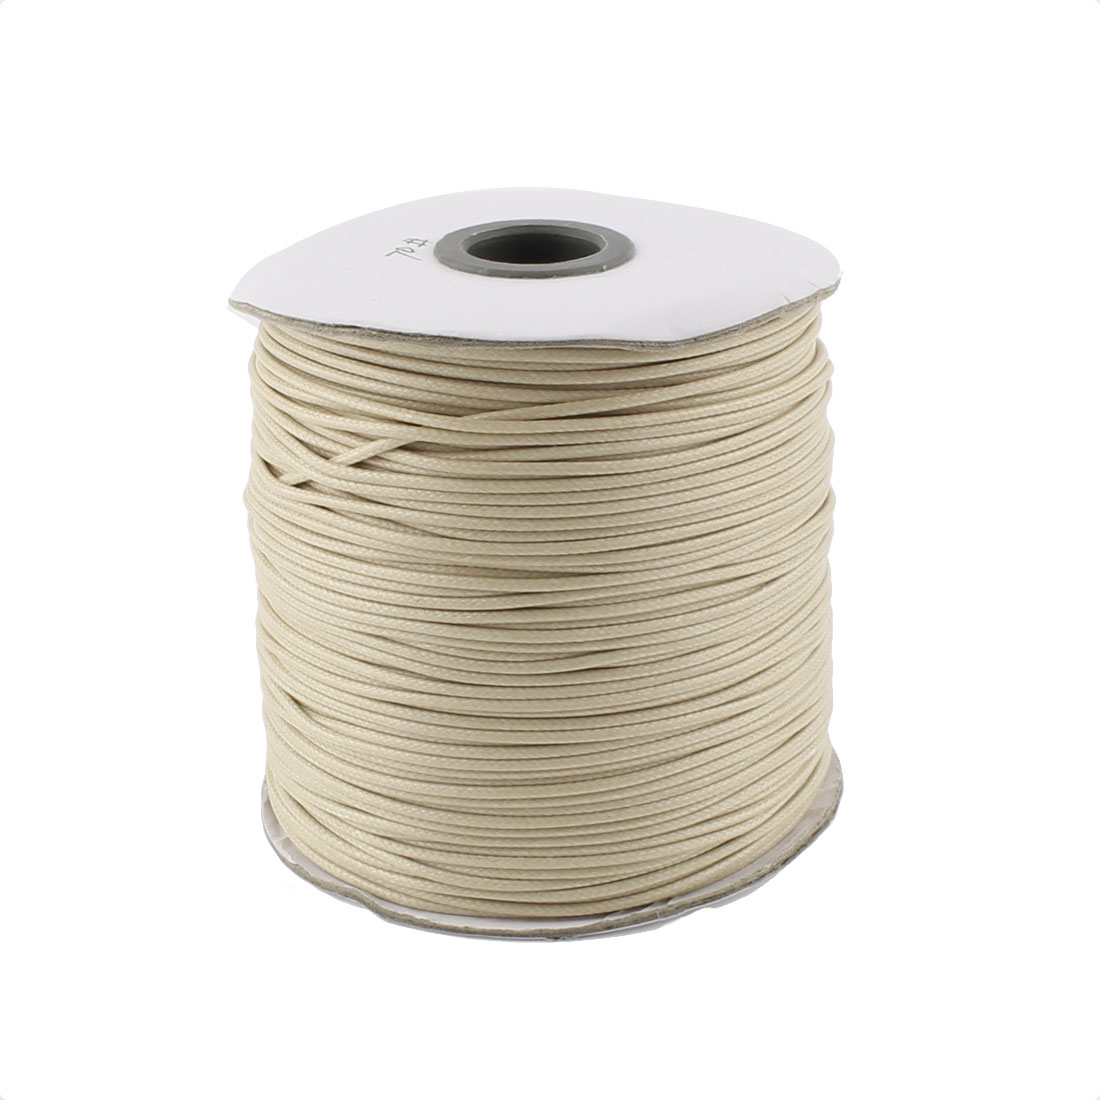 Cotton Waxed Making String Beading Thread Cord Roll Beige 190 Yard for Beads Jewelry